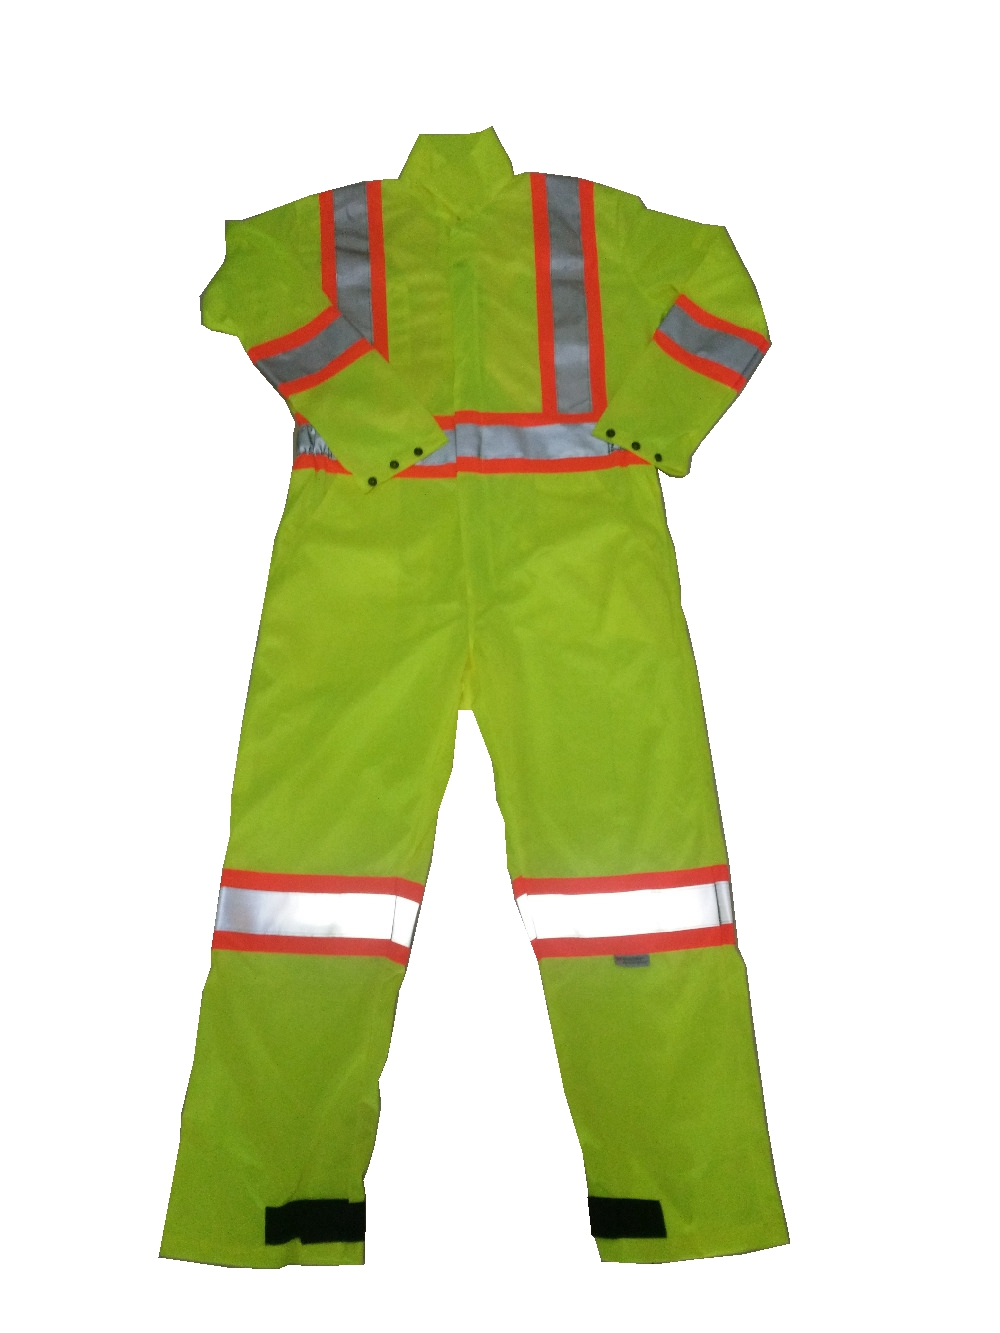 Fluorescence Yellow High Visibility Safety workwear Hi Viz Work Coat coverall workwear coveralls suits подушка 40х40 с полной запечаткой printio hkkknmnm200056